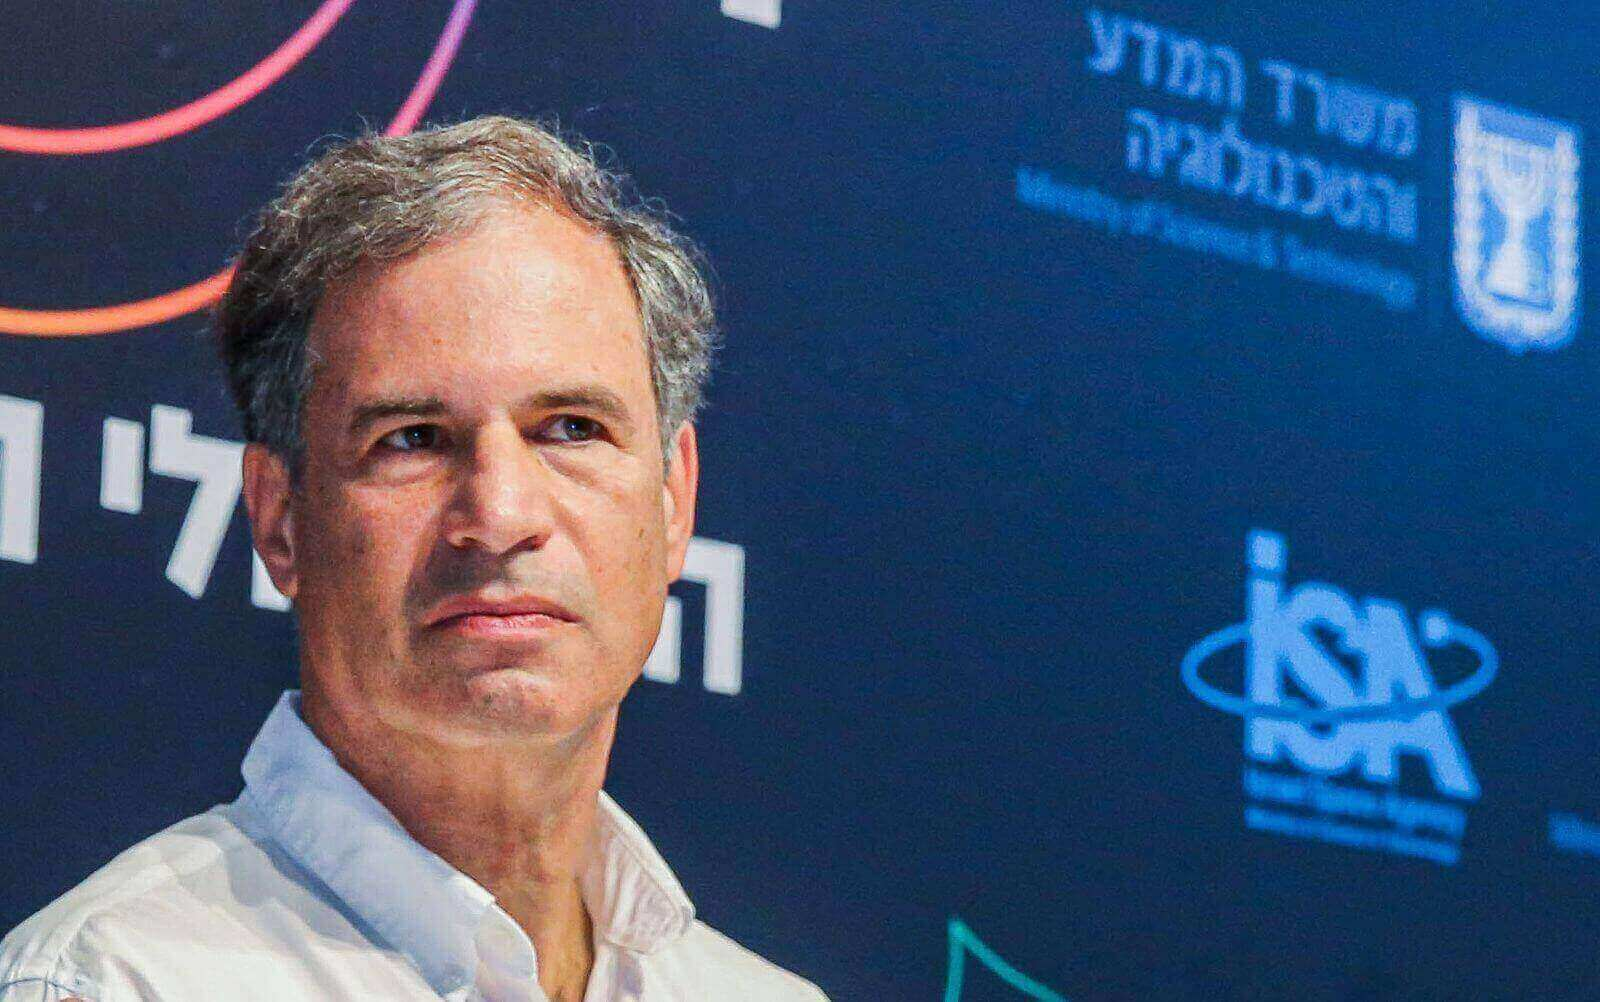 Eytan Stibbe is the second Israeli astronaut to launch into space. Seen here at a press conference in Tel Aviv on May 5, 2021. (Flash90)